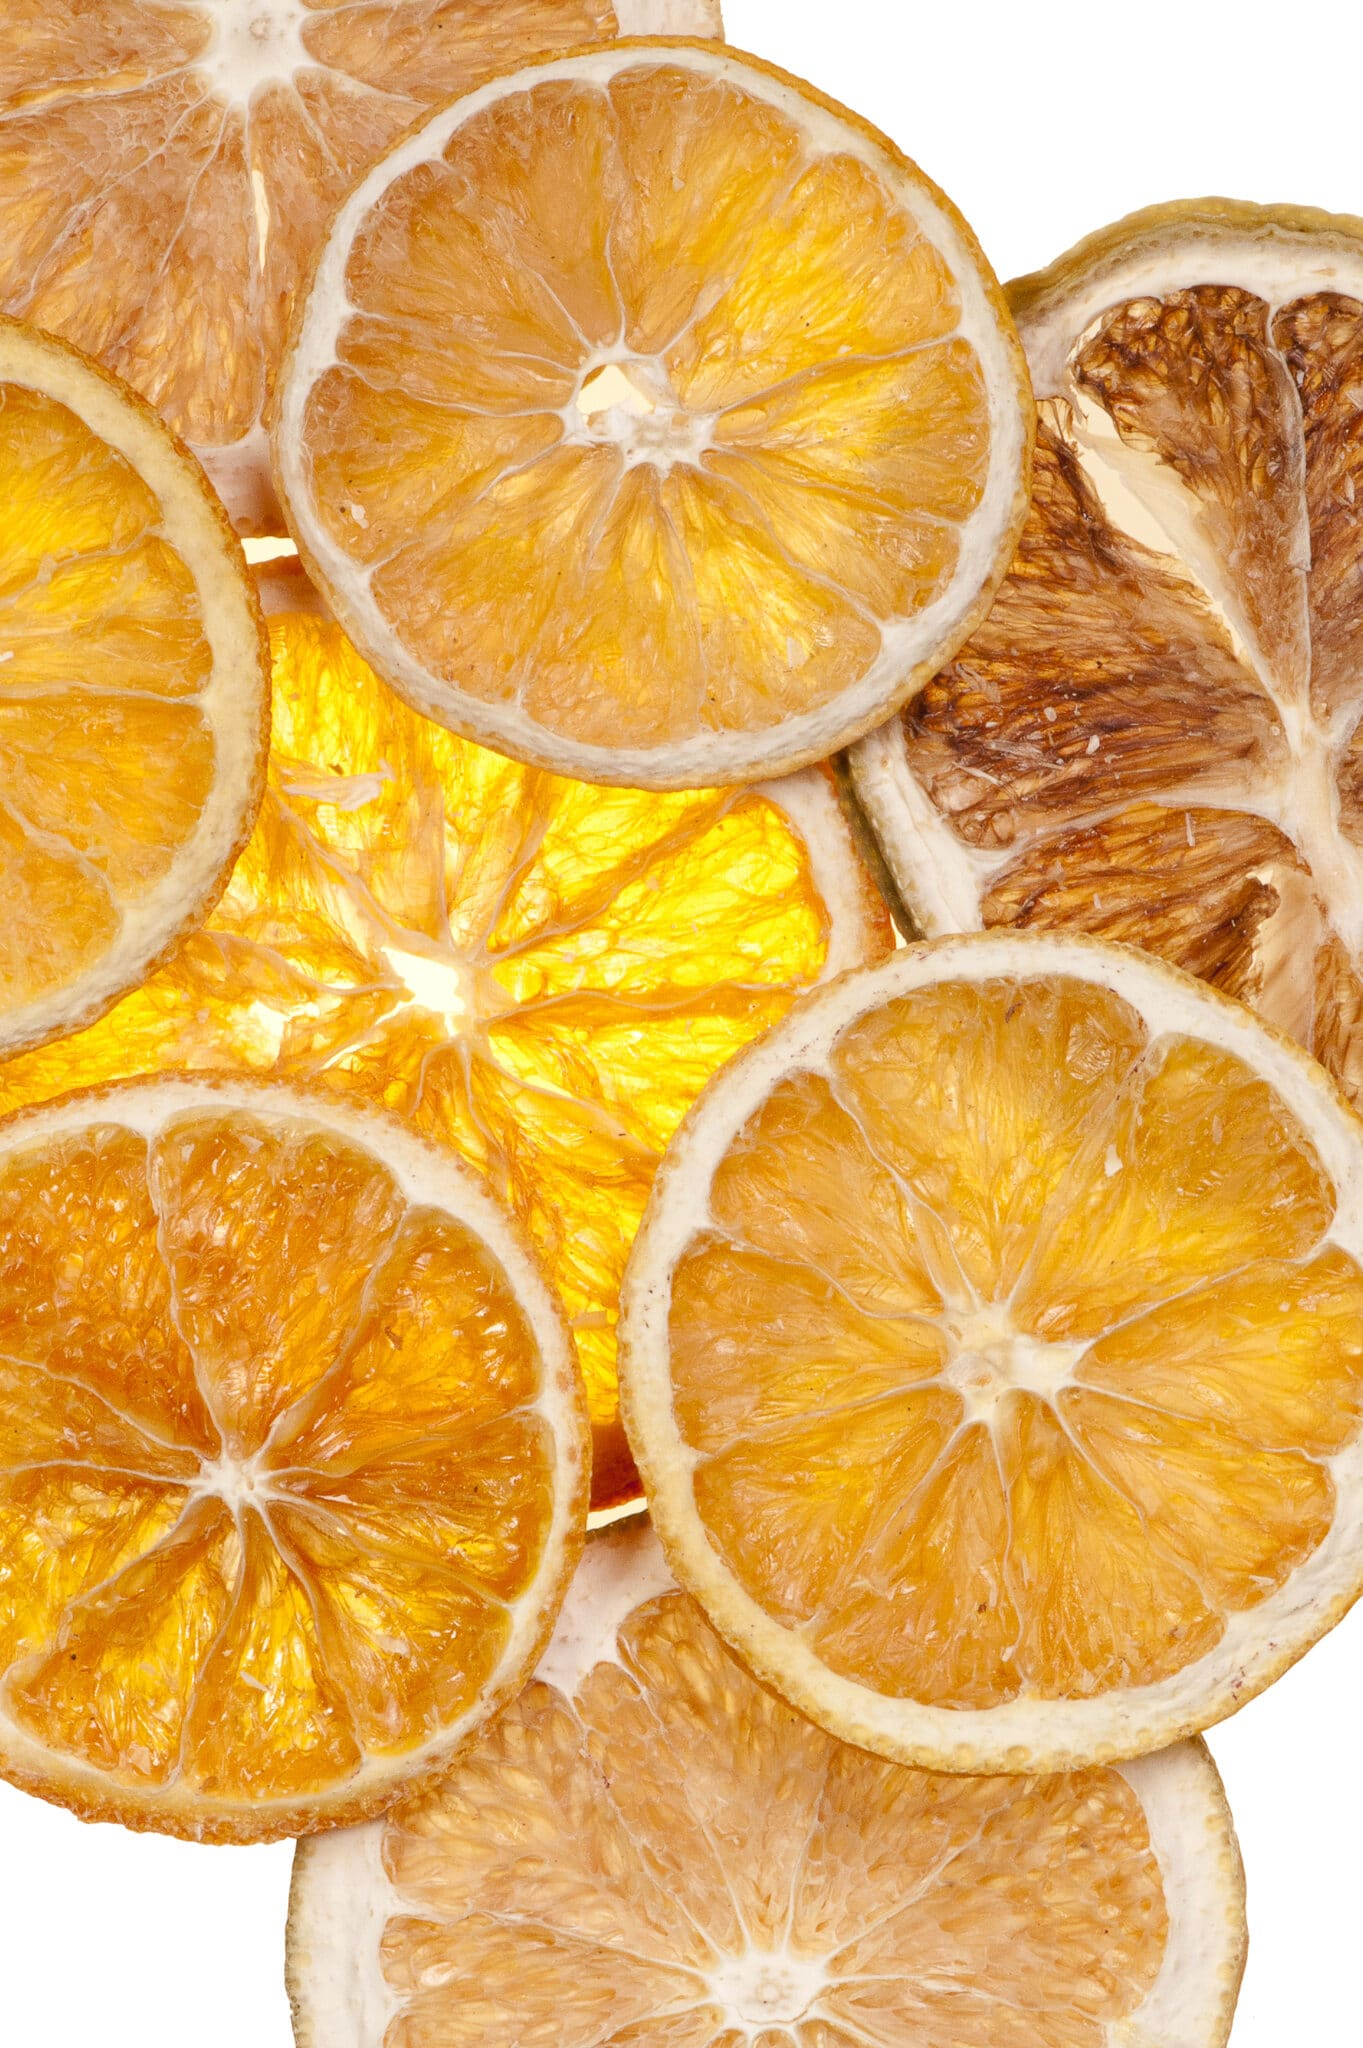 Dried orange slices against a bright white table top.